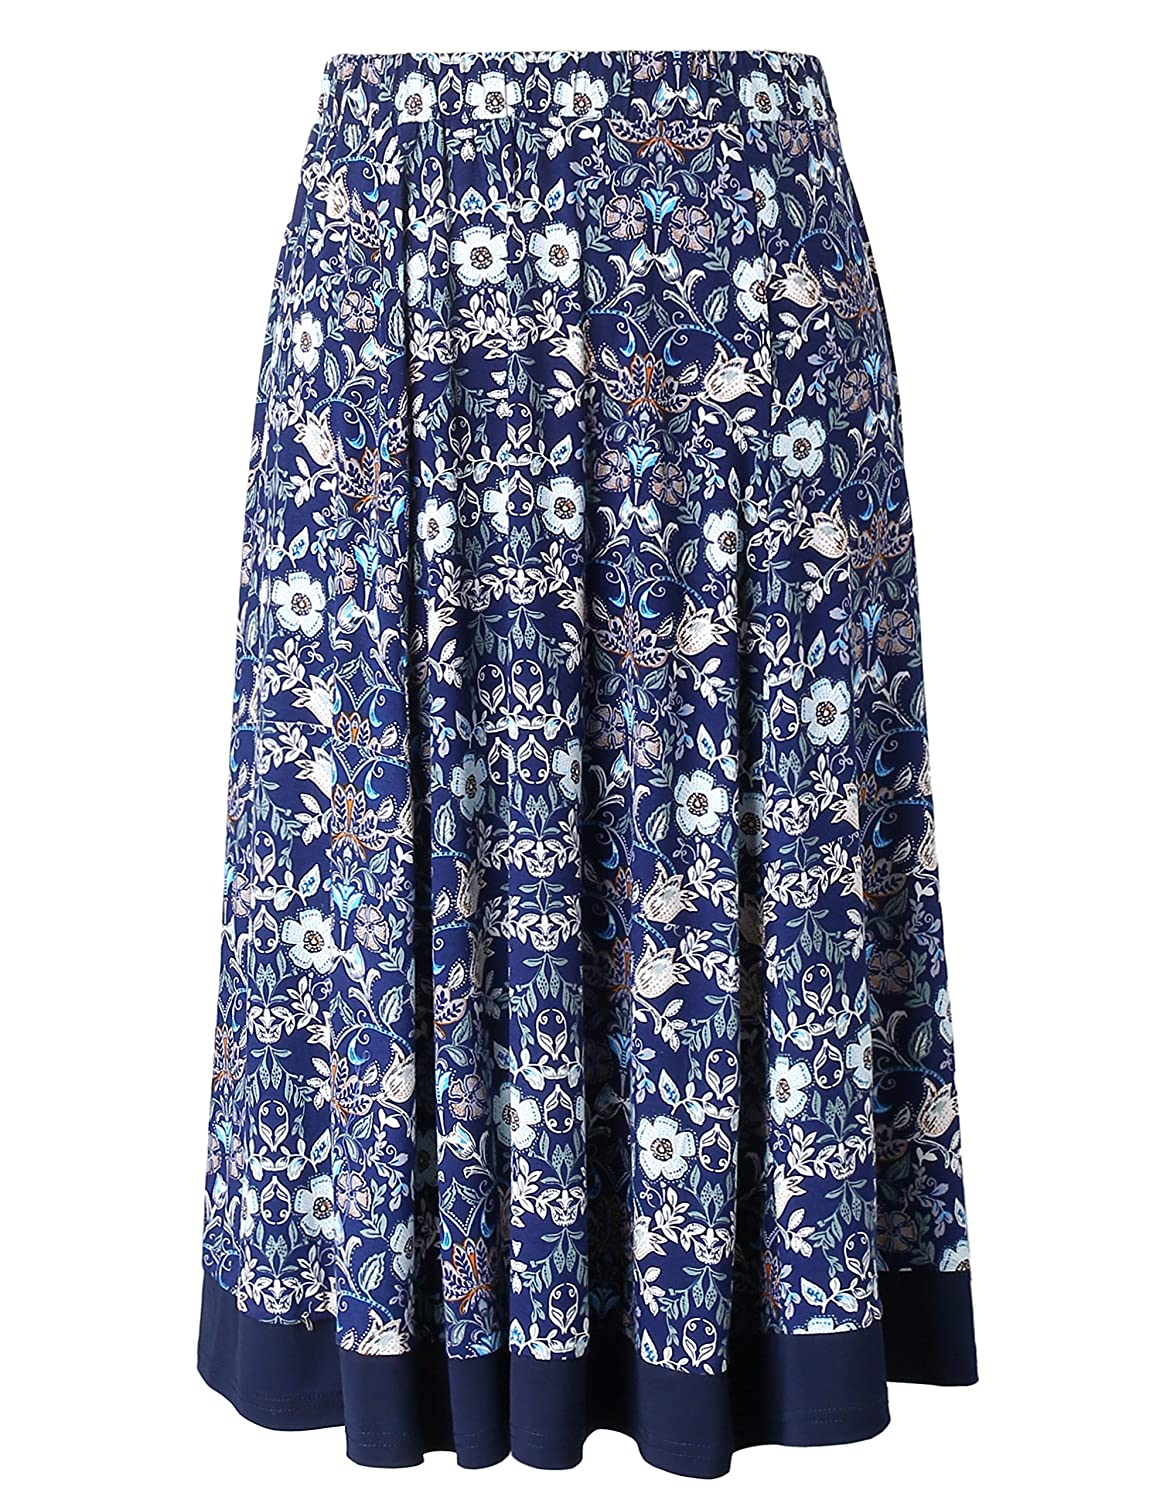 Chicwe Women's Plus Size Flared Elastic Waist Skirt with Calf Length 1X-4X C18C259